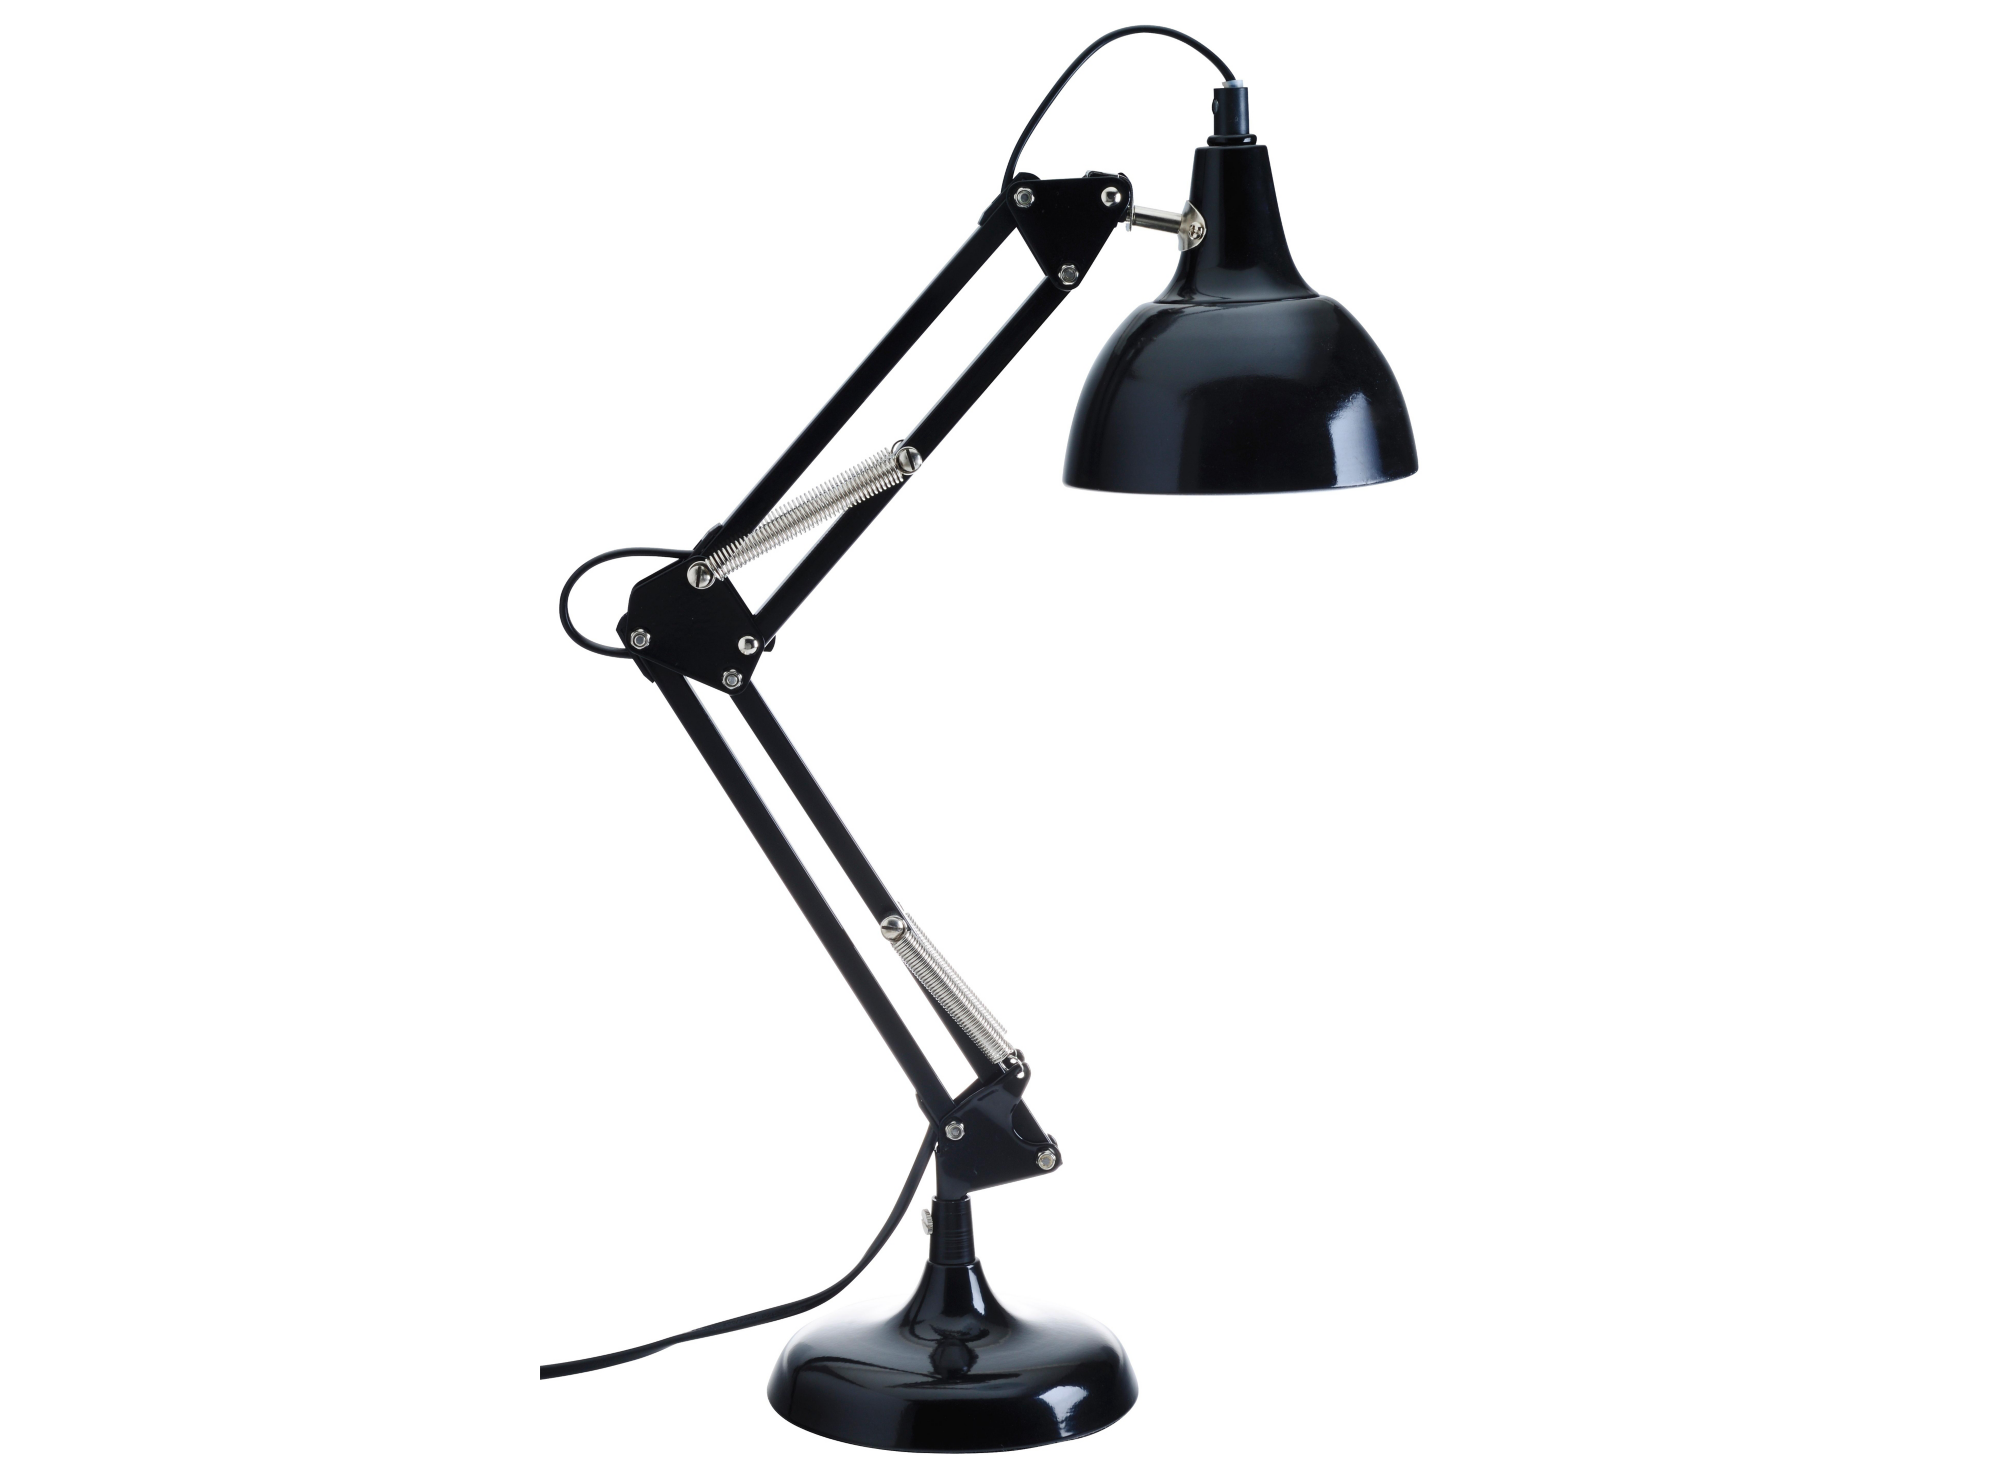 lampe de bureau articulee h 60 cm noir lampe de bureau cat gories luminaire fly. Black Bedroom Furniture Sets. Home Design Ideas